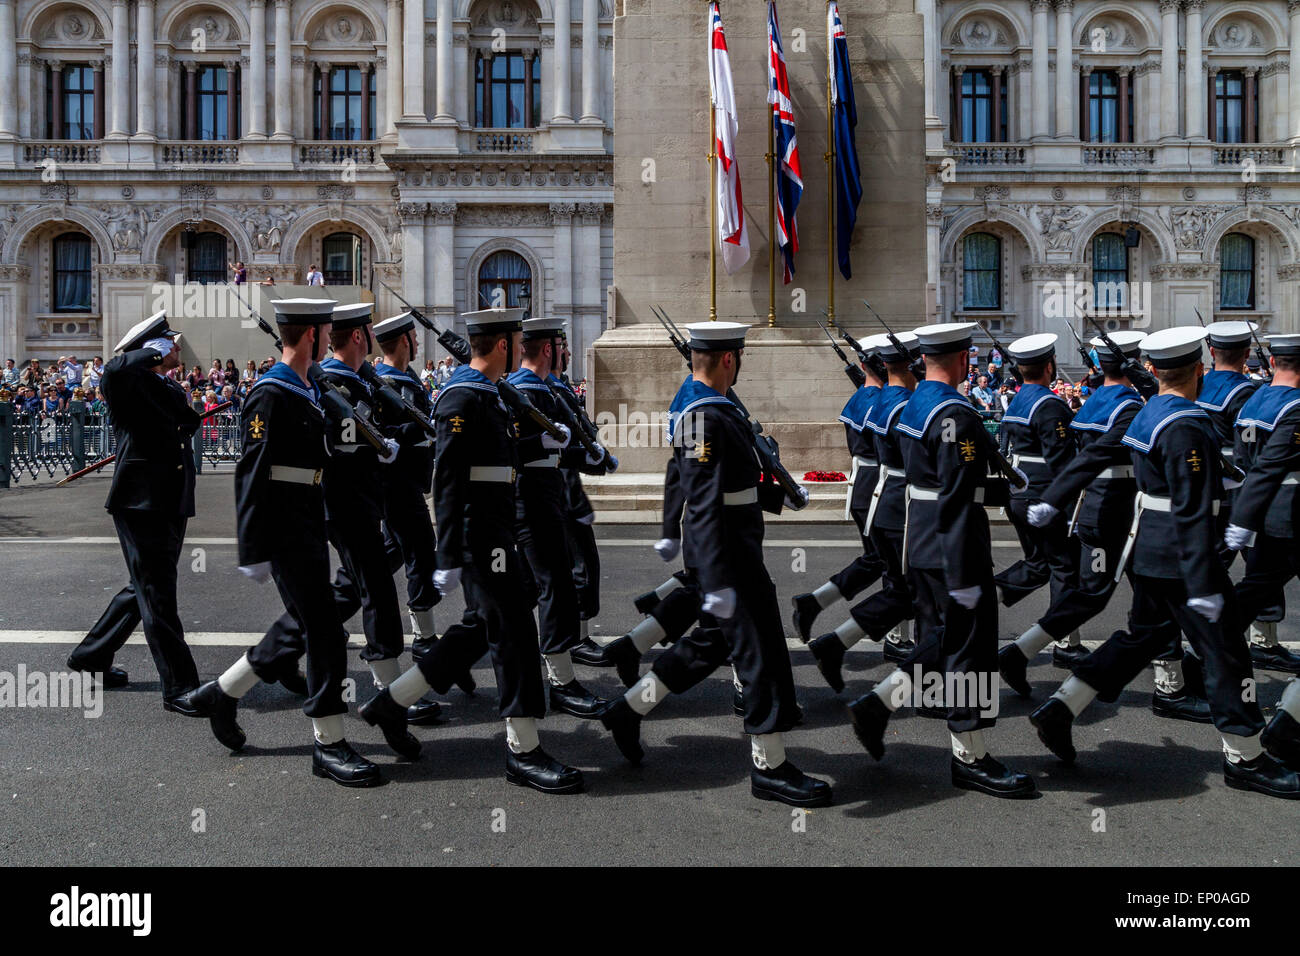 A Service Attachment Of The Royal Navy March Past The Cenotaph As Part Of The 70th Anniversary of VE Day, London, - Stock Image